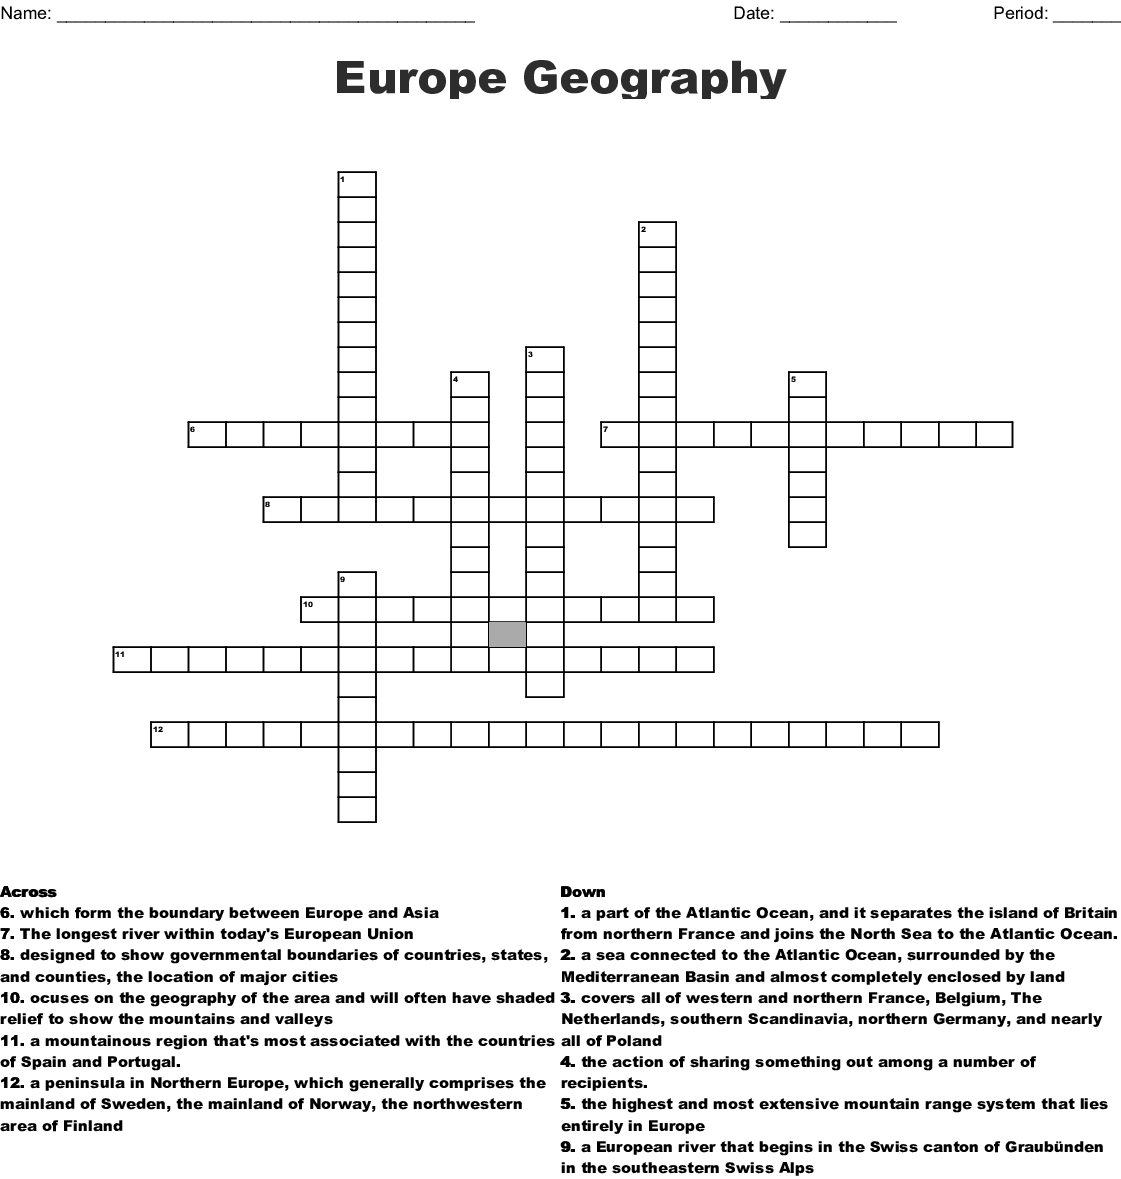 Europe Geography Crossword - Wordmint - Printable Geography Crossword